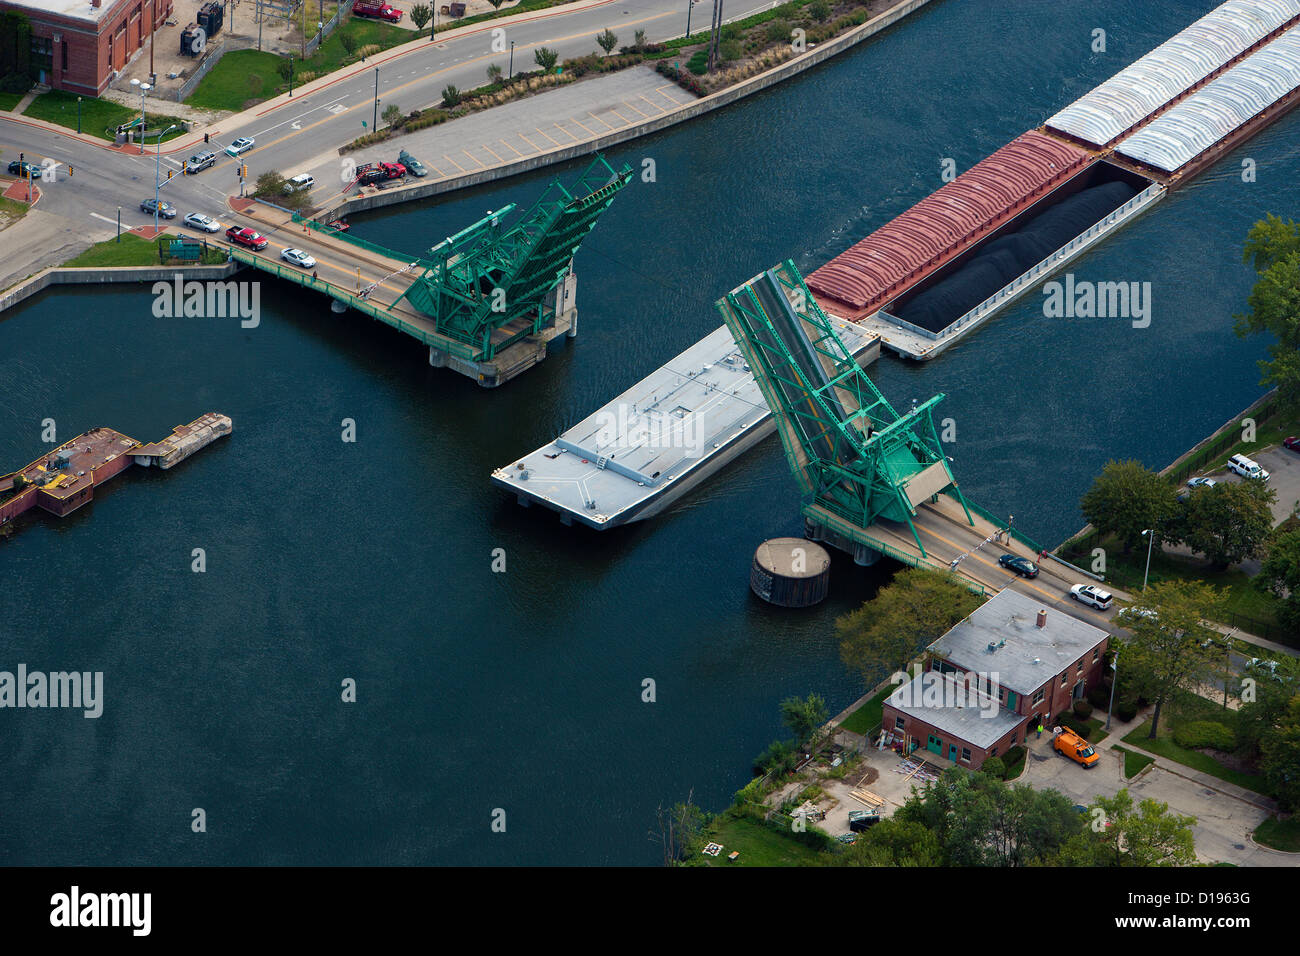 aerial photograph barge passing under bascule draw bridge Joliet, Illinois - Stock Image